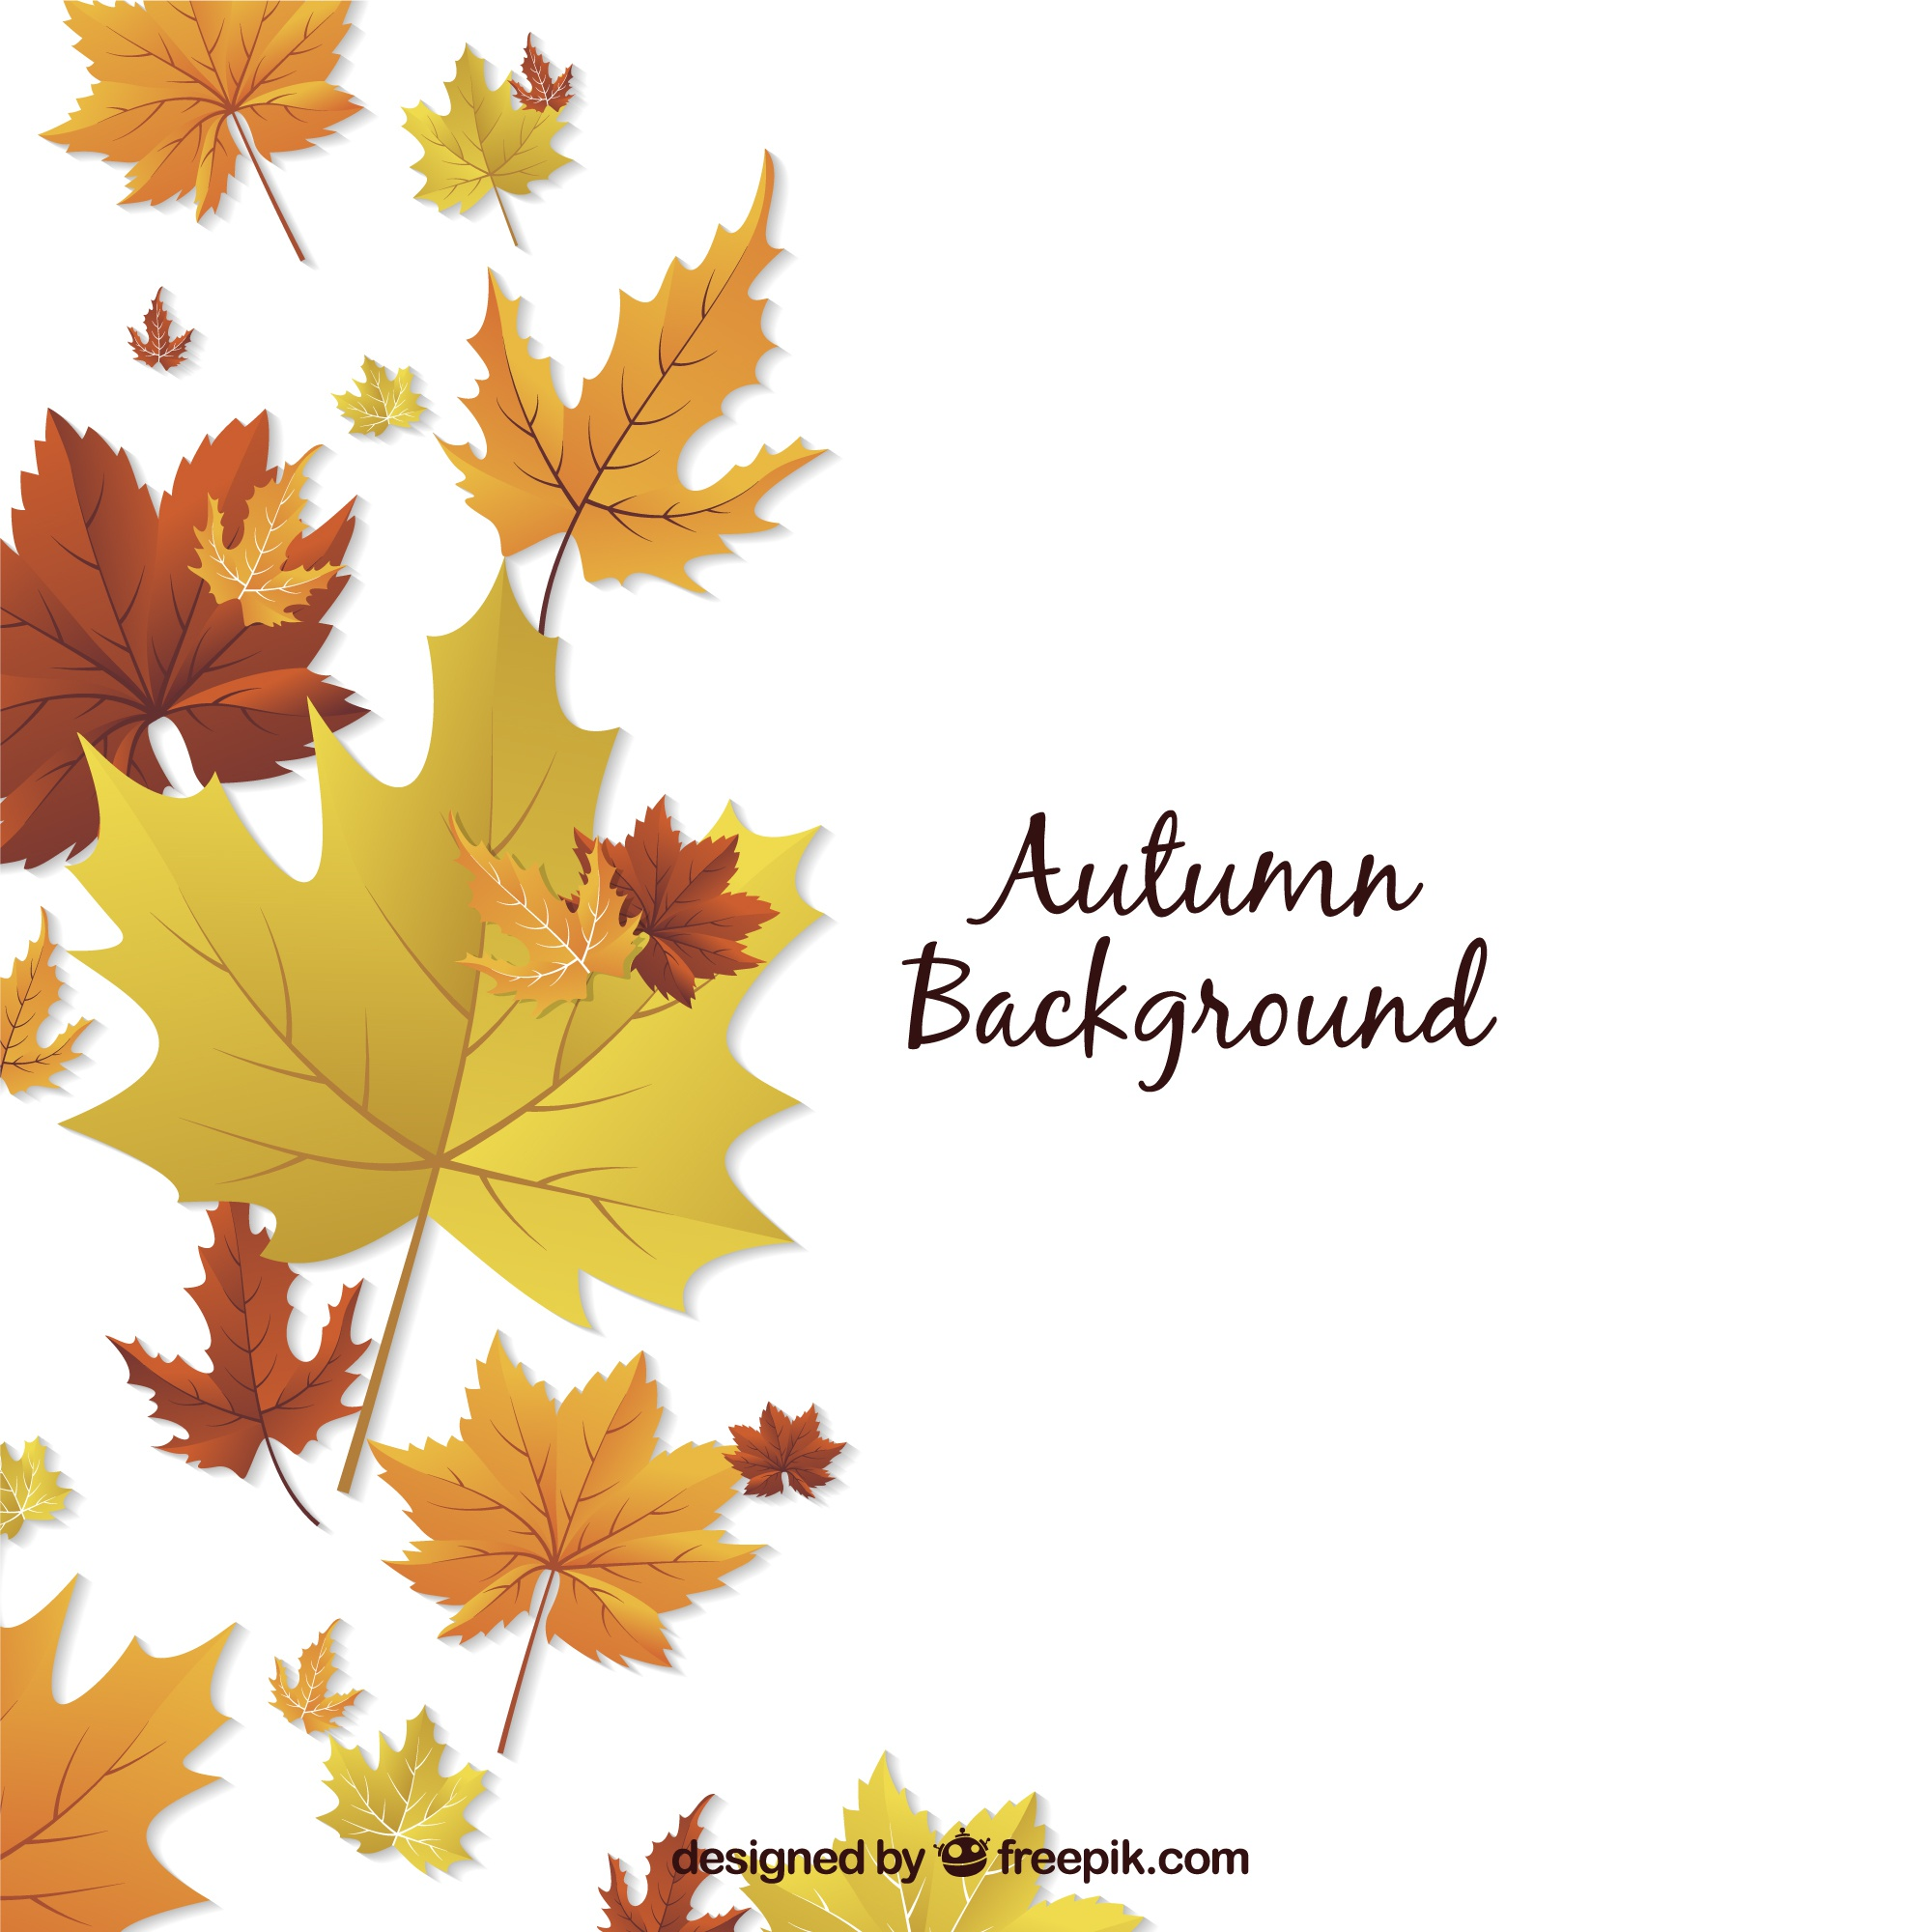 Autumn background with decorative dried flowers